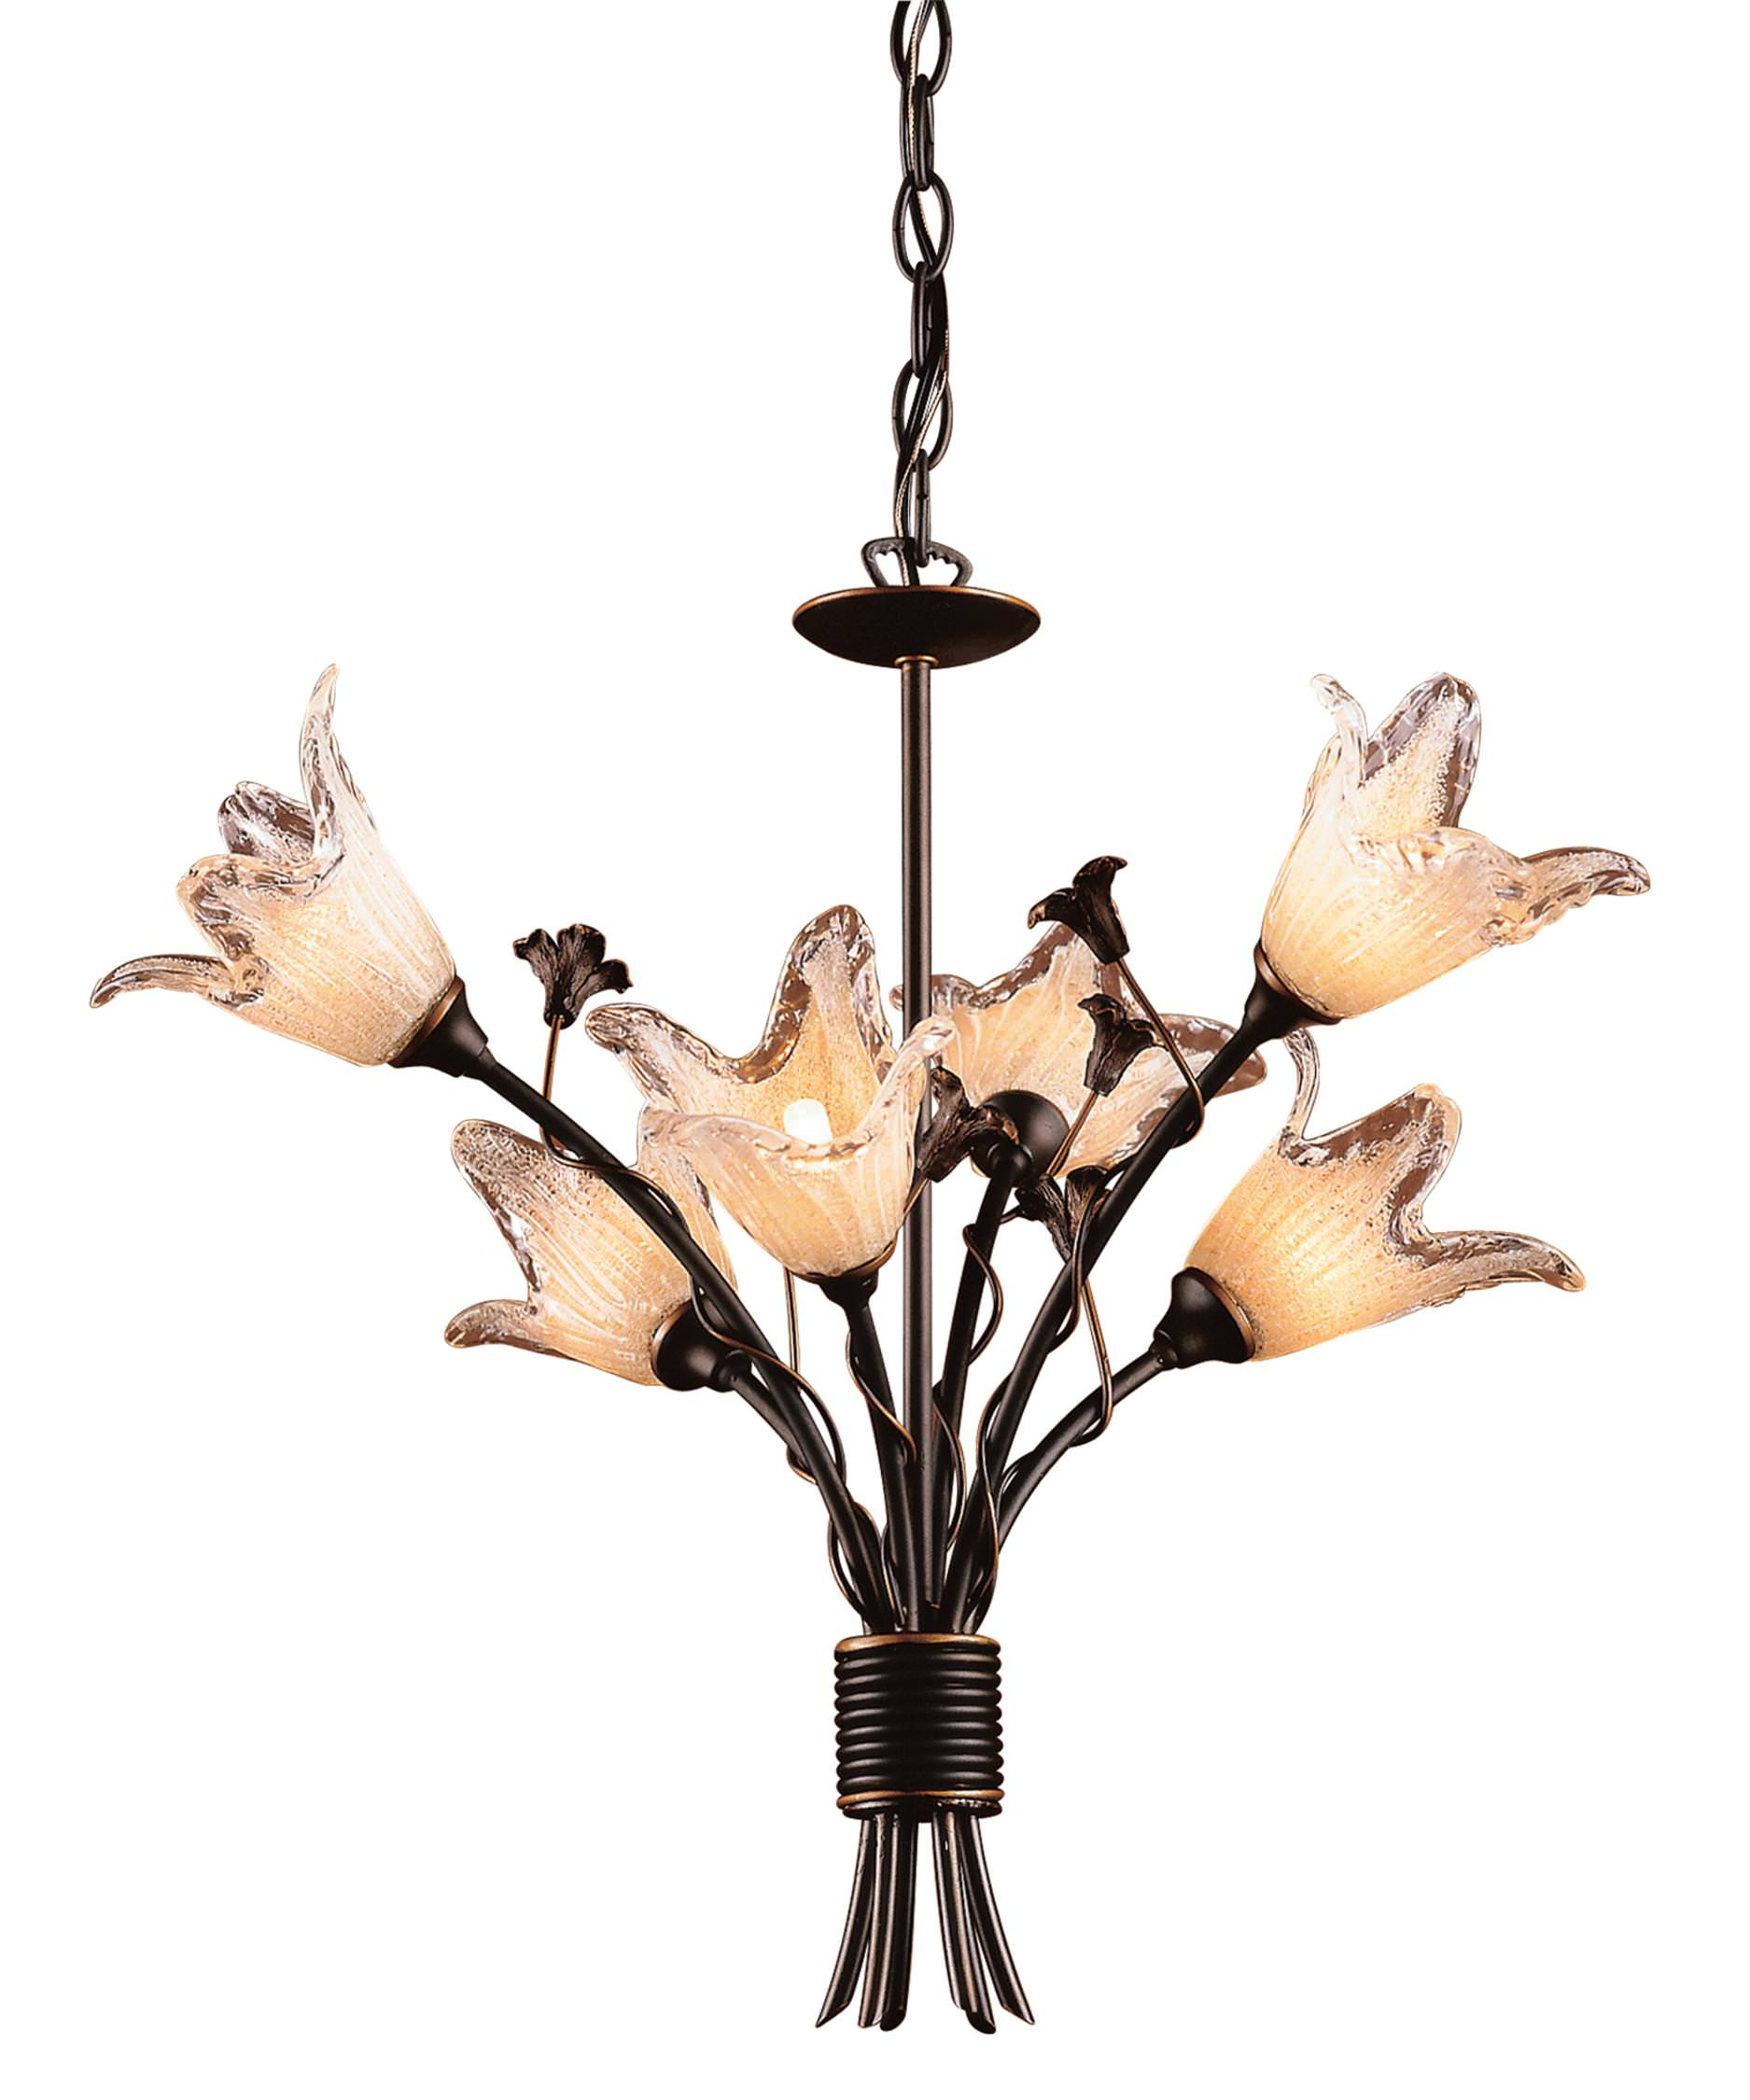 whimsical lighting fixtures. Whimsical Lighting Fixtures